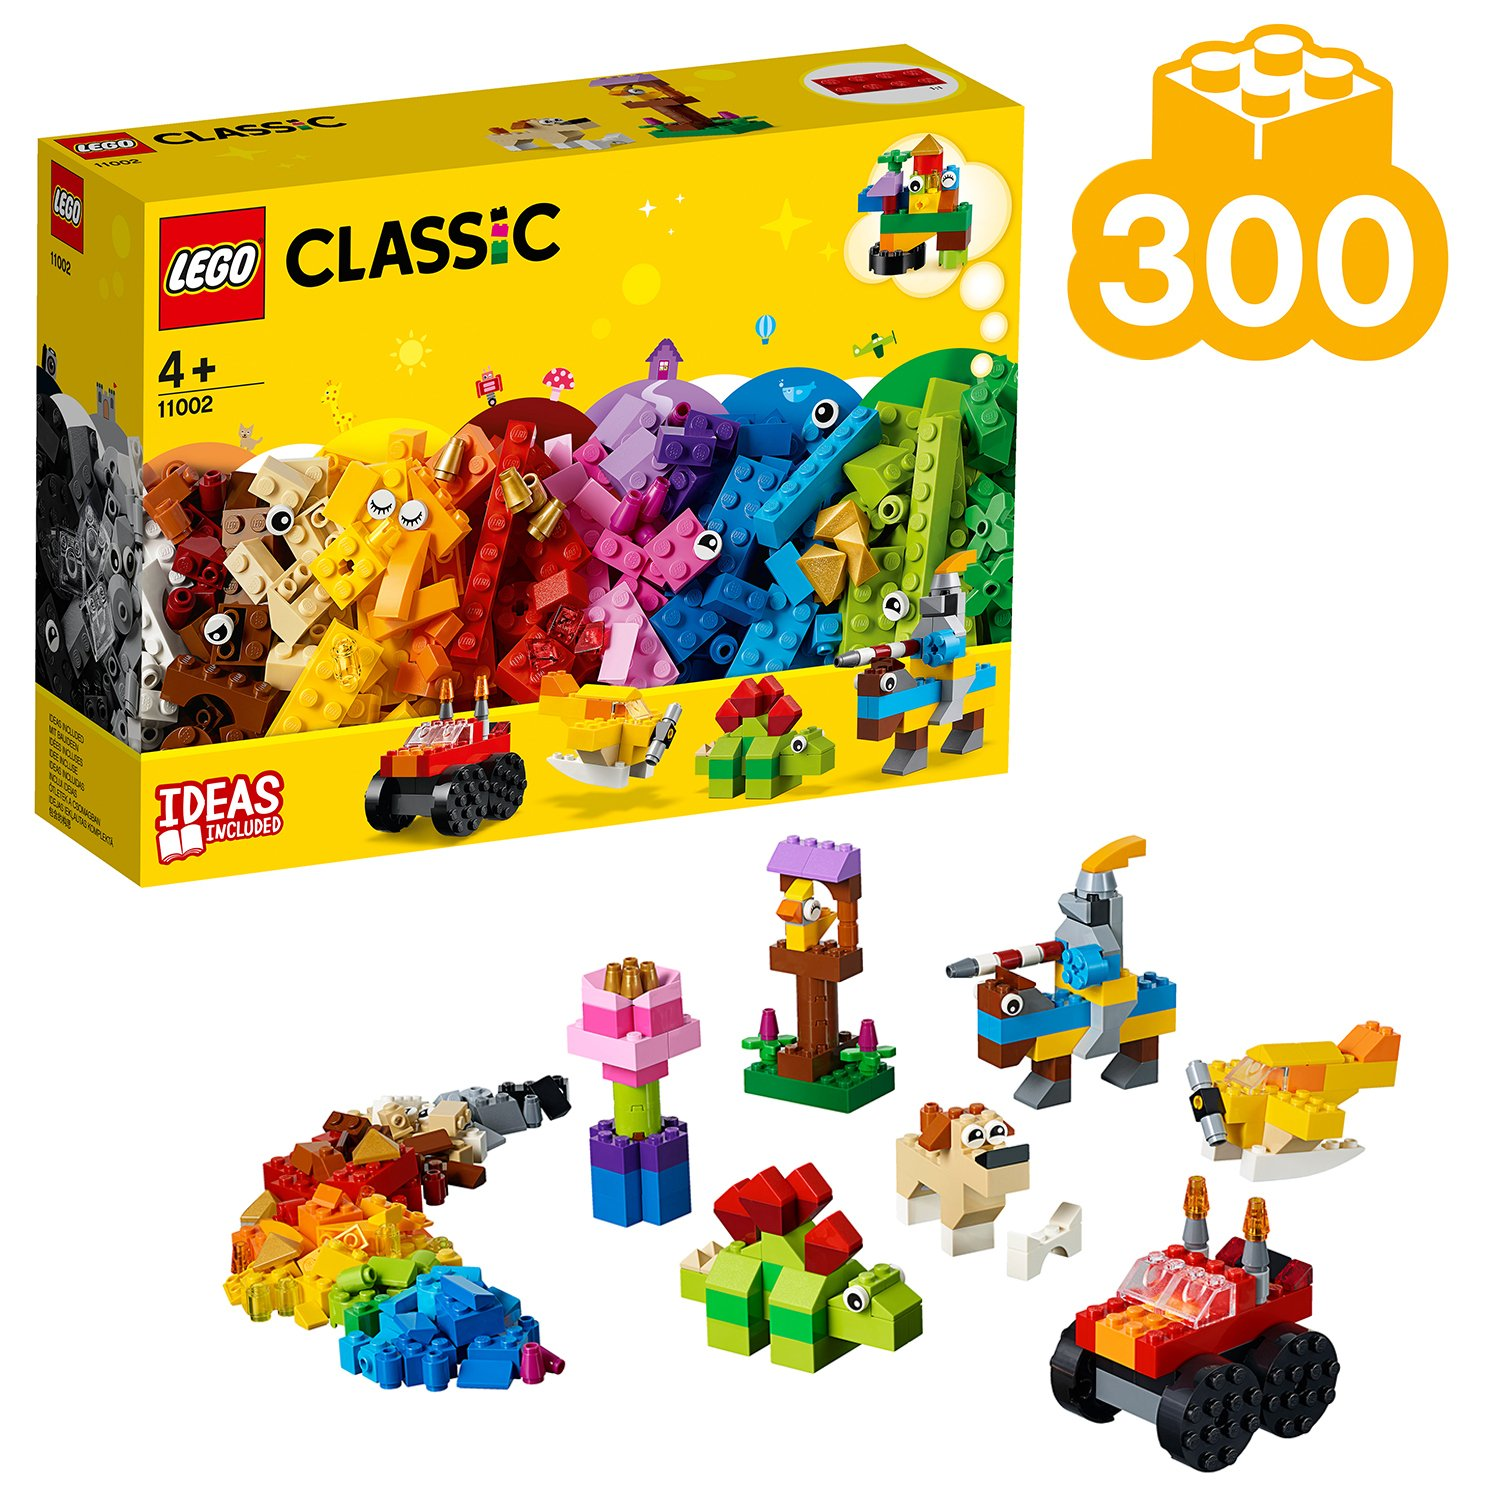 LEGO Classic Basic Toy Bricks Building Set - 11002